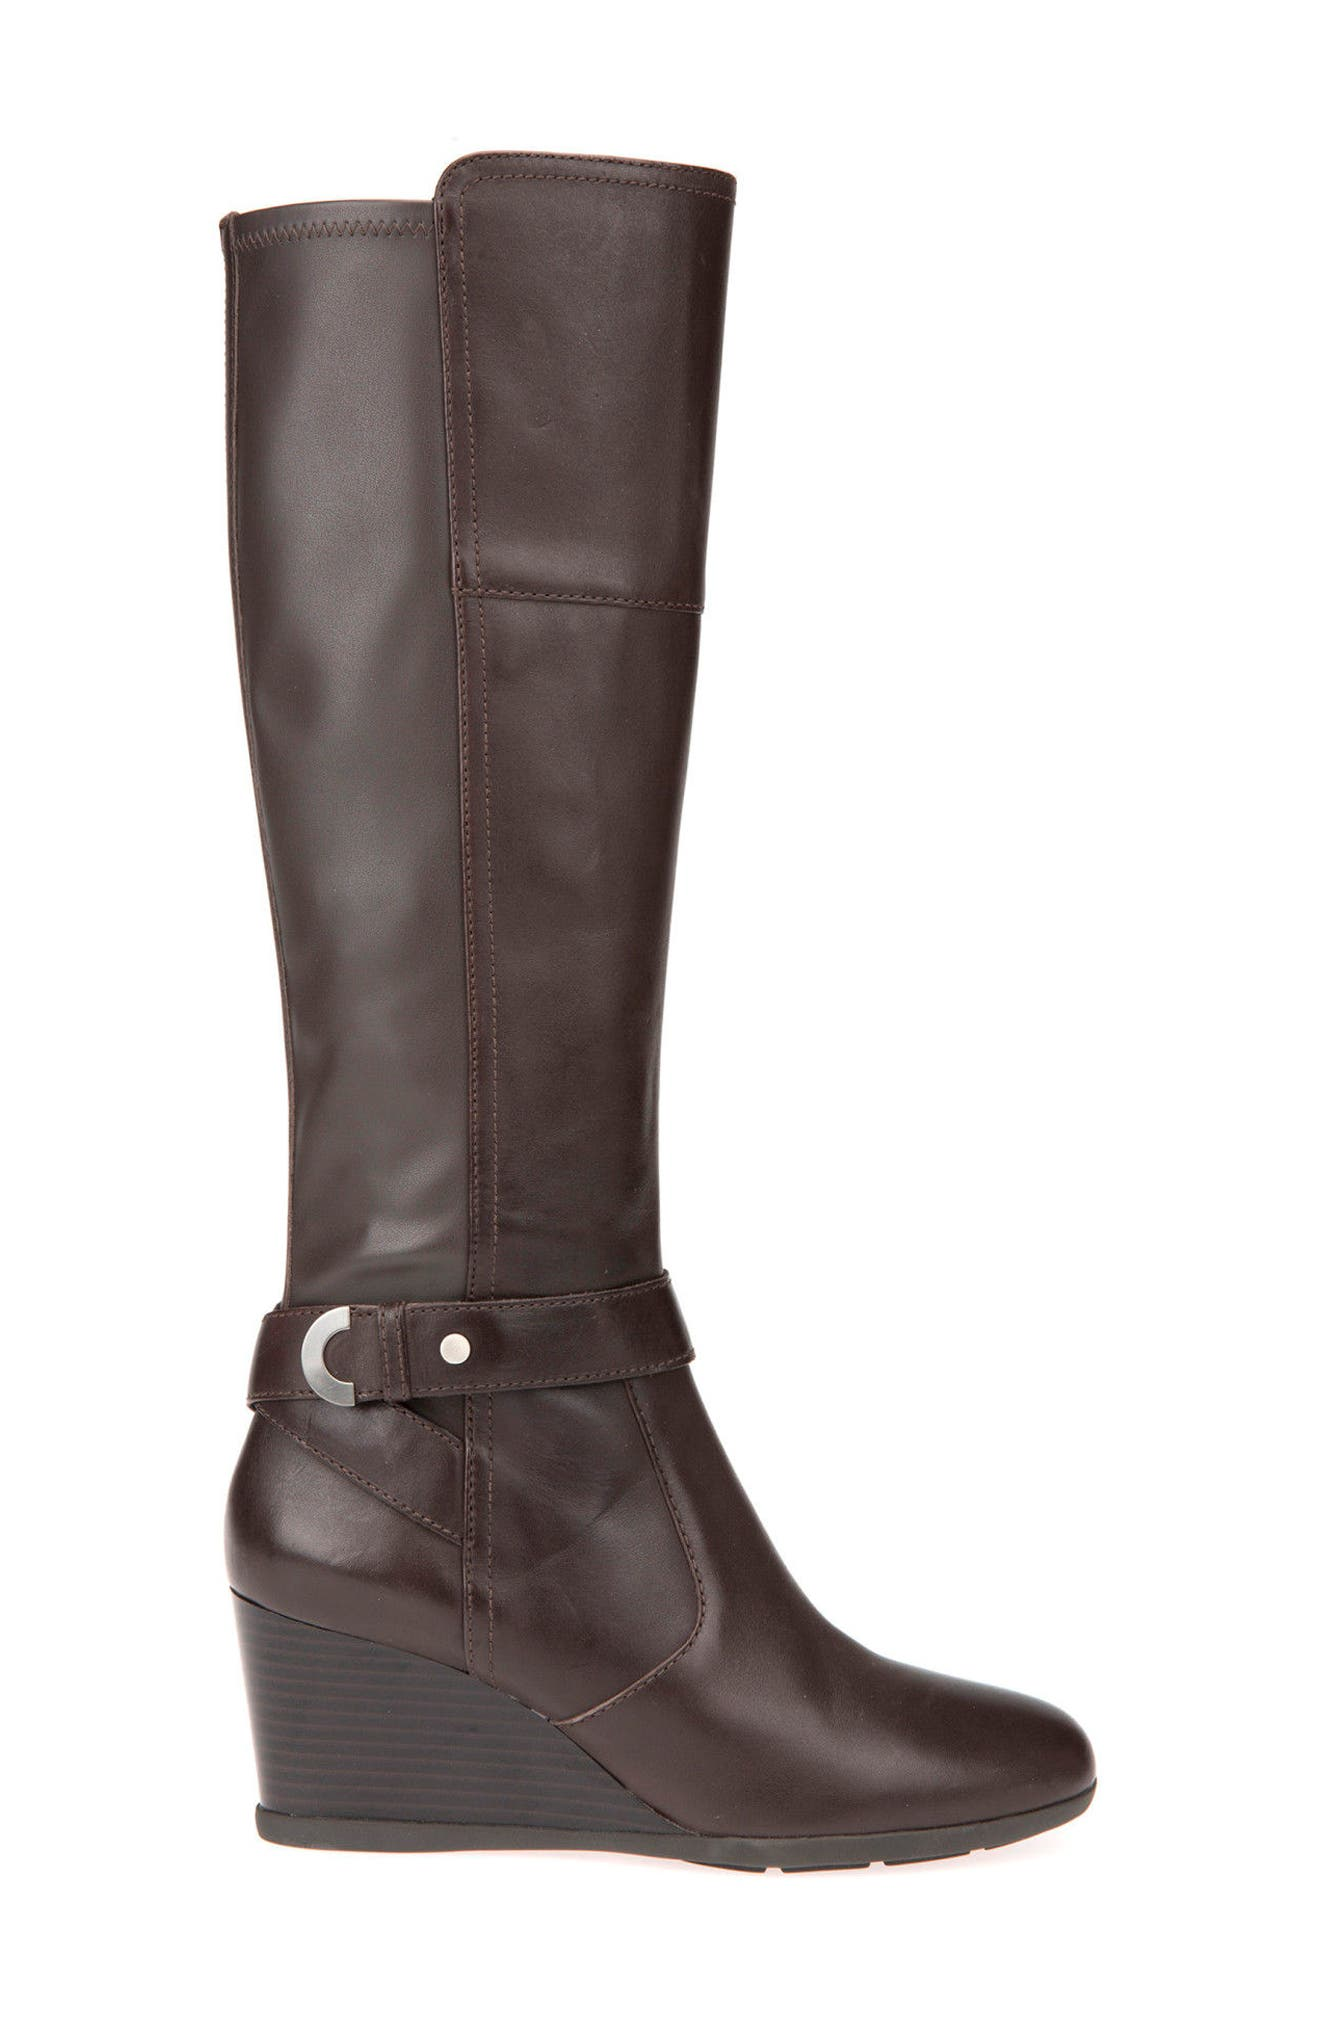 Inspiration Knee High Wedge Boot,                             Alternate thumbnail 3, color,                             COFFEE LEATHER